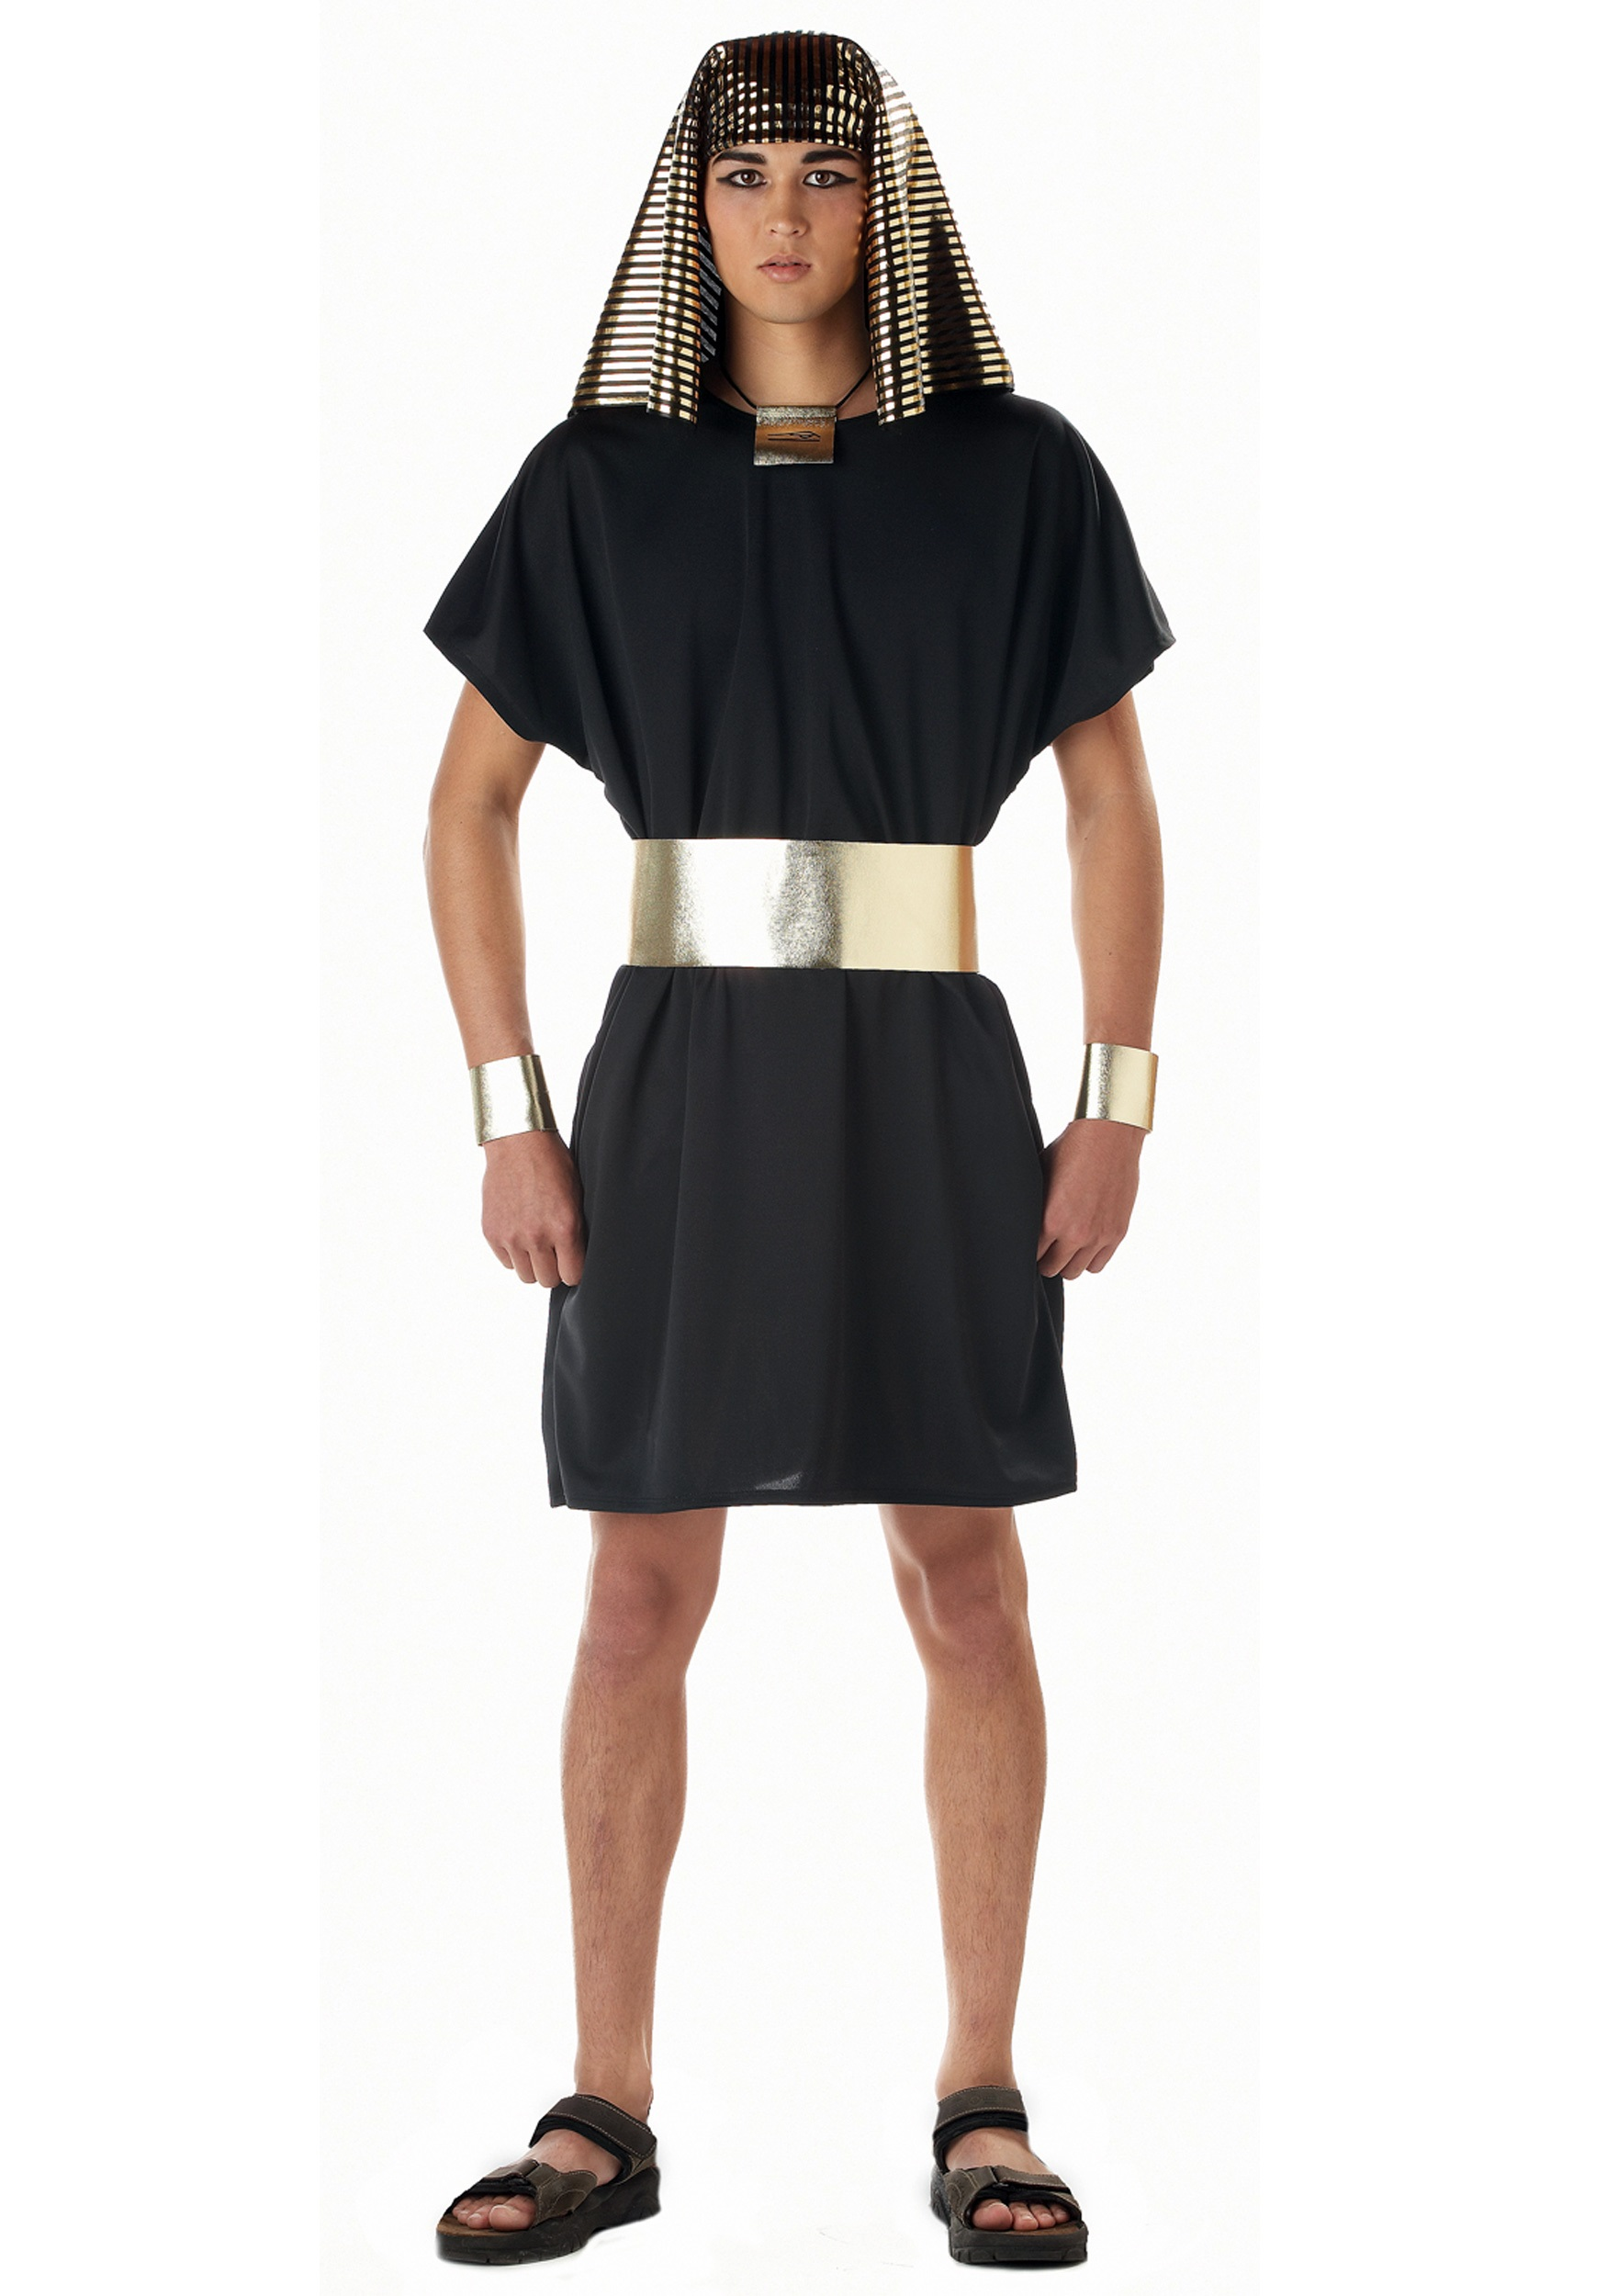 Simple Egyptian Costume Ancient Egyptian Costume